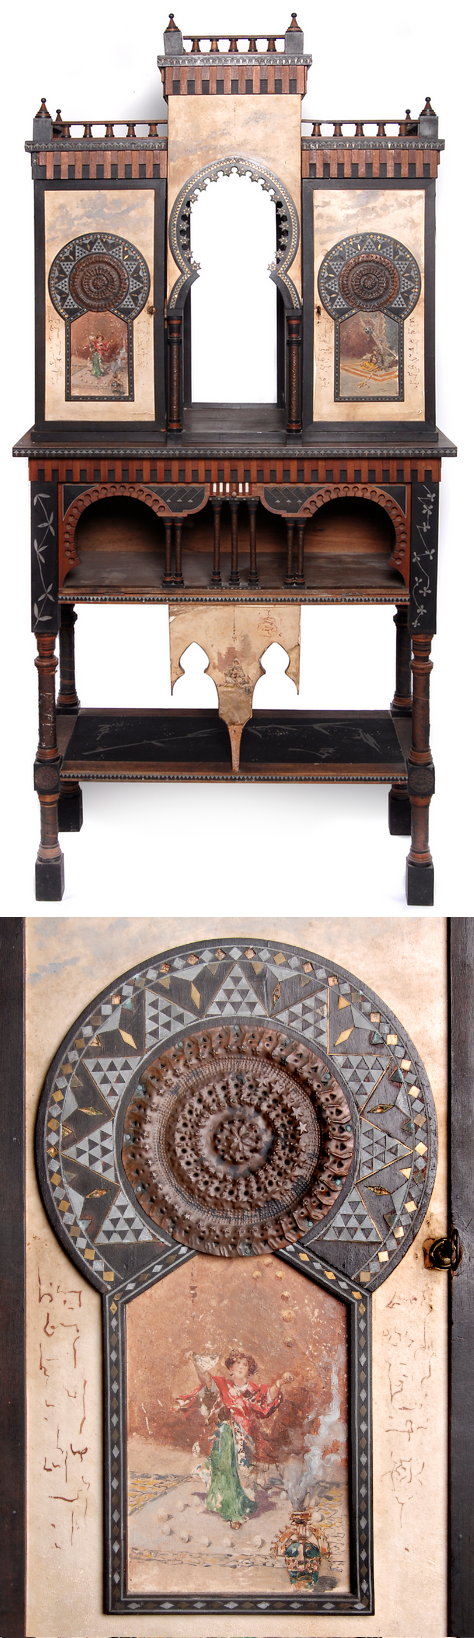 CARLO BUGATTI cabinet, c. 1900, Orientalist painted panels by Riccardo Pellegrini | SOLD $17,625 Germany 2008